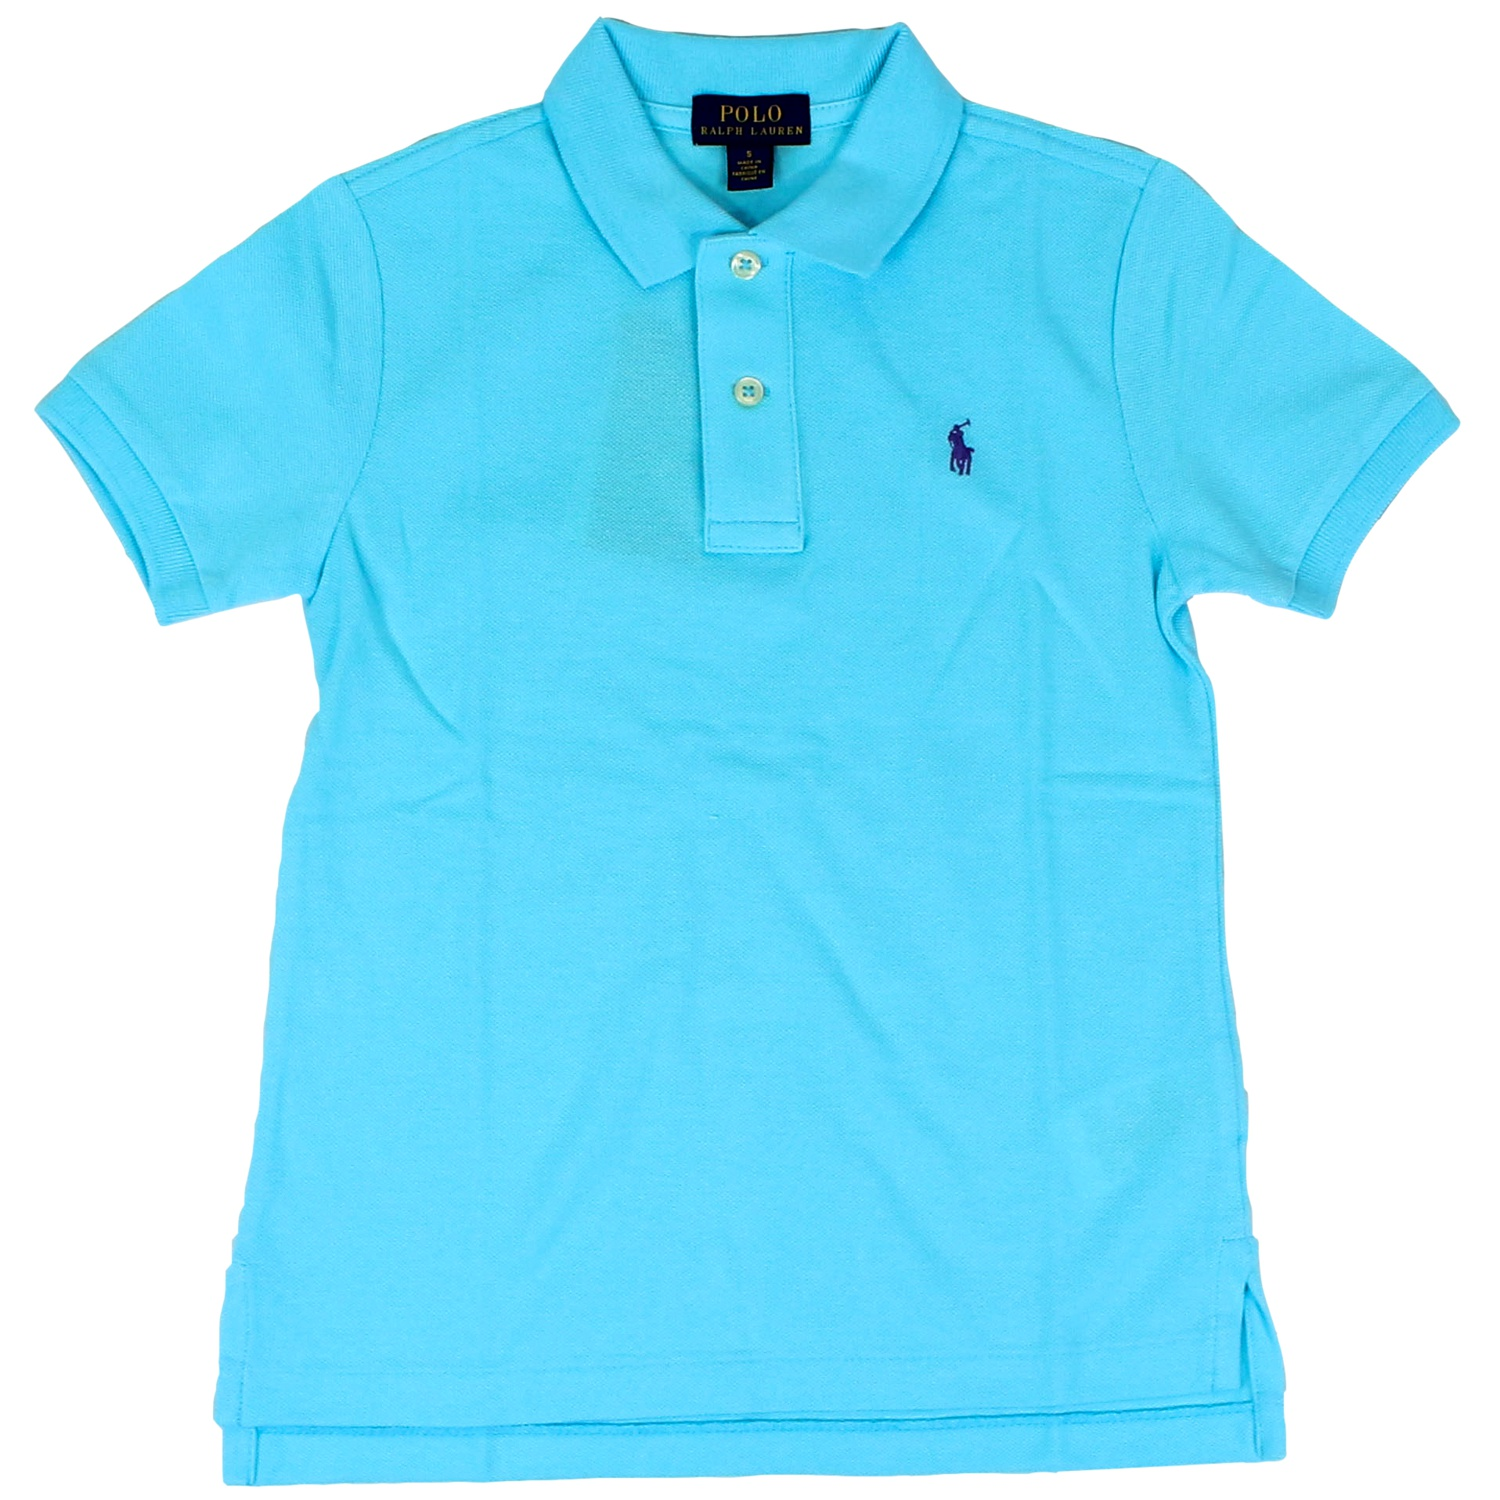 854ba909 Cotton polo shirt with short sleeves Turquoise, Polo Ralph Lauren ...